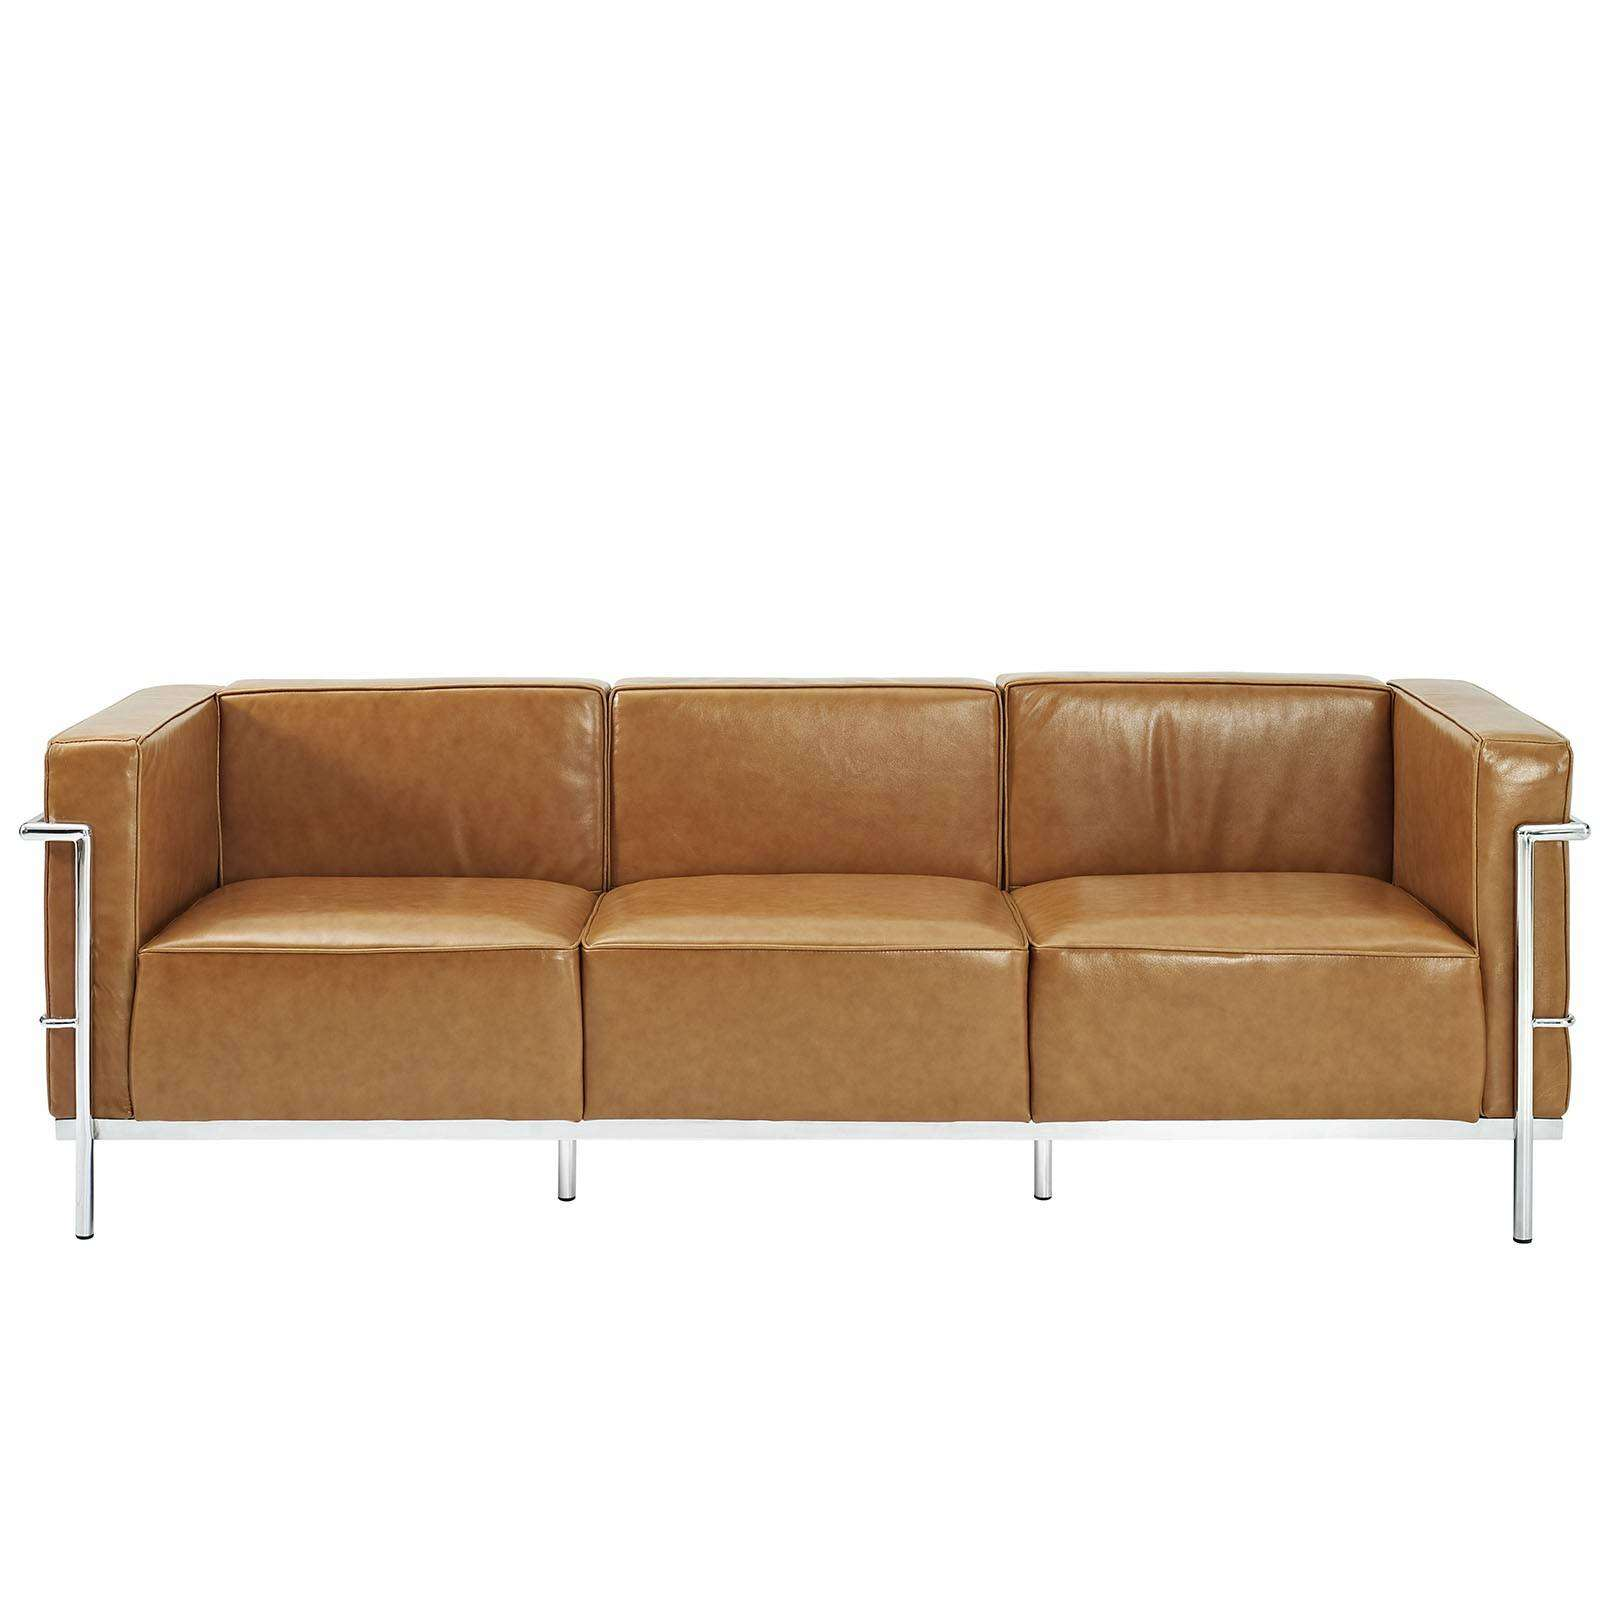 Sofa Le Corbusier Le Corbusier Style Lc3 Sofa Leather